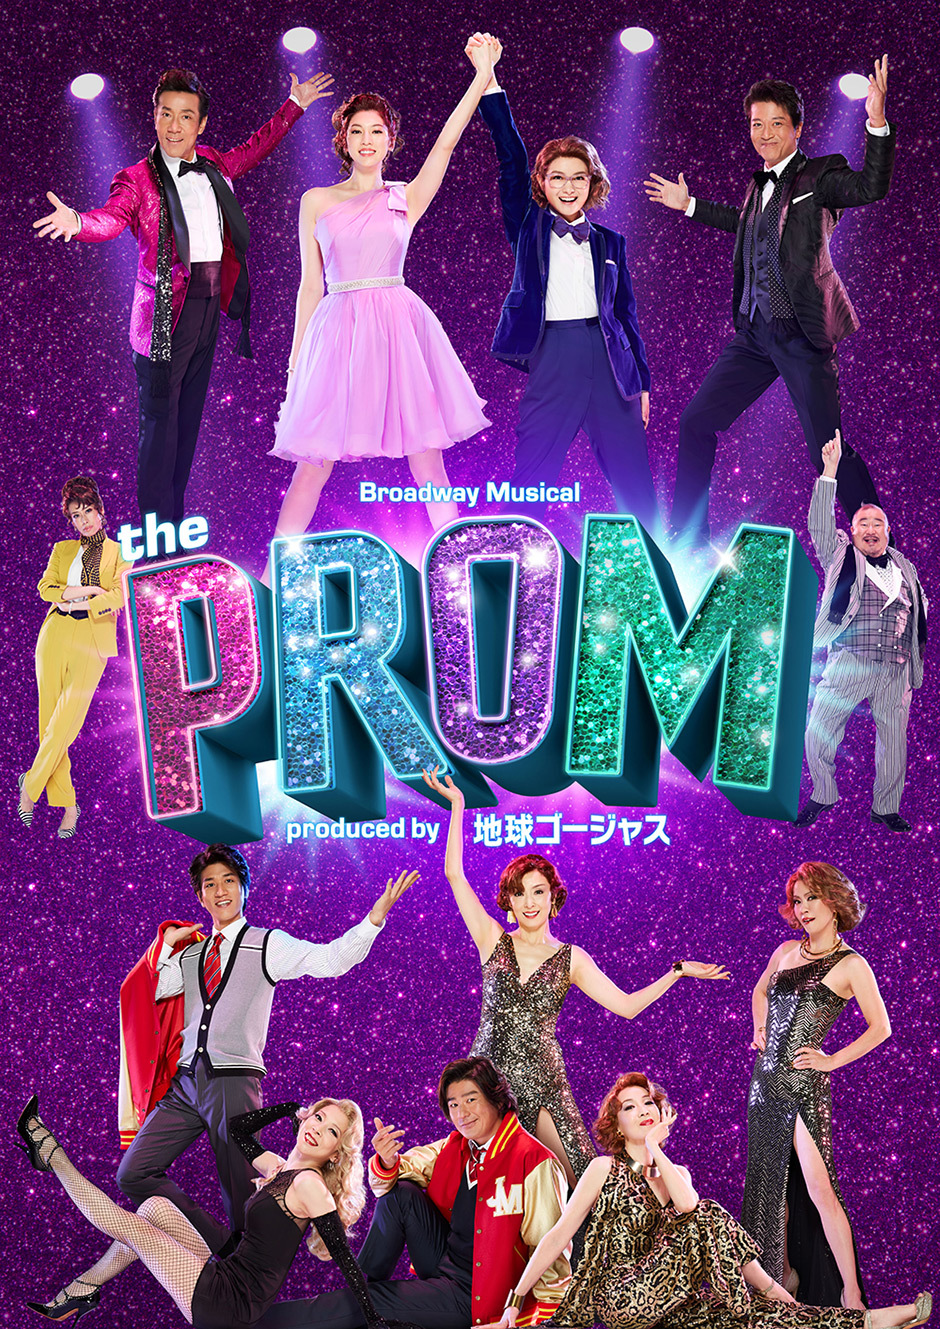 「Broadway Musical『The PROM』 Produced by 地球ゴージャス」